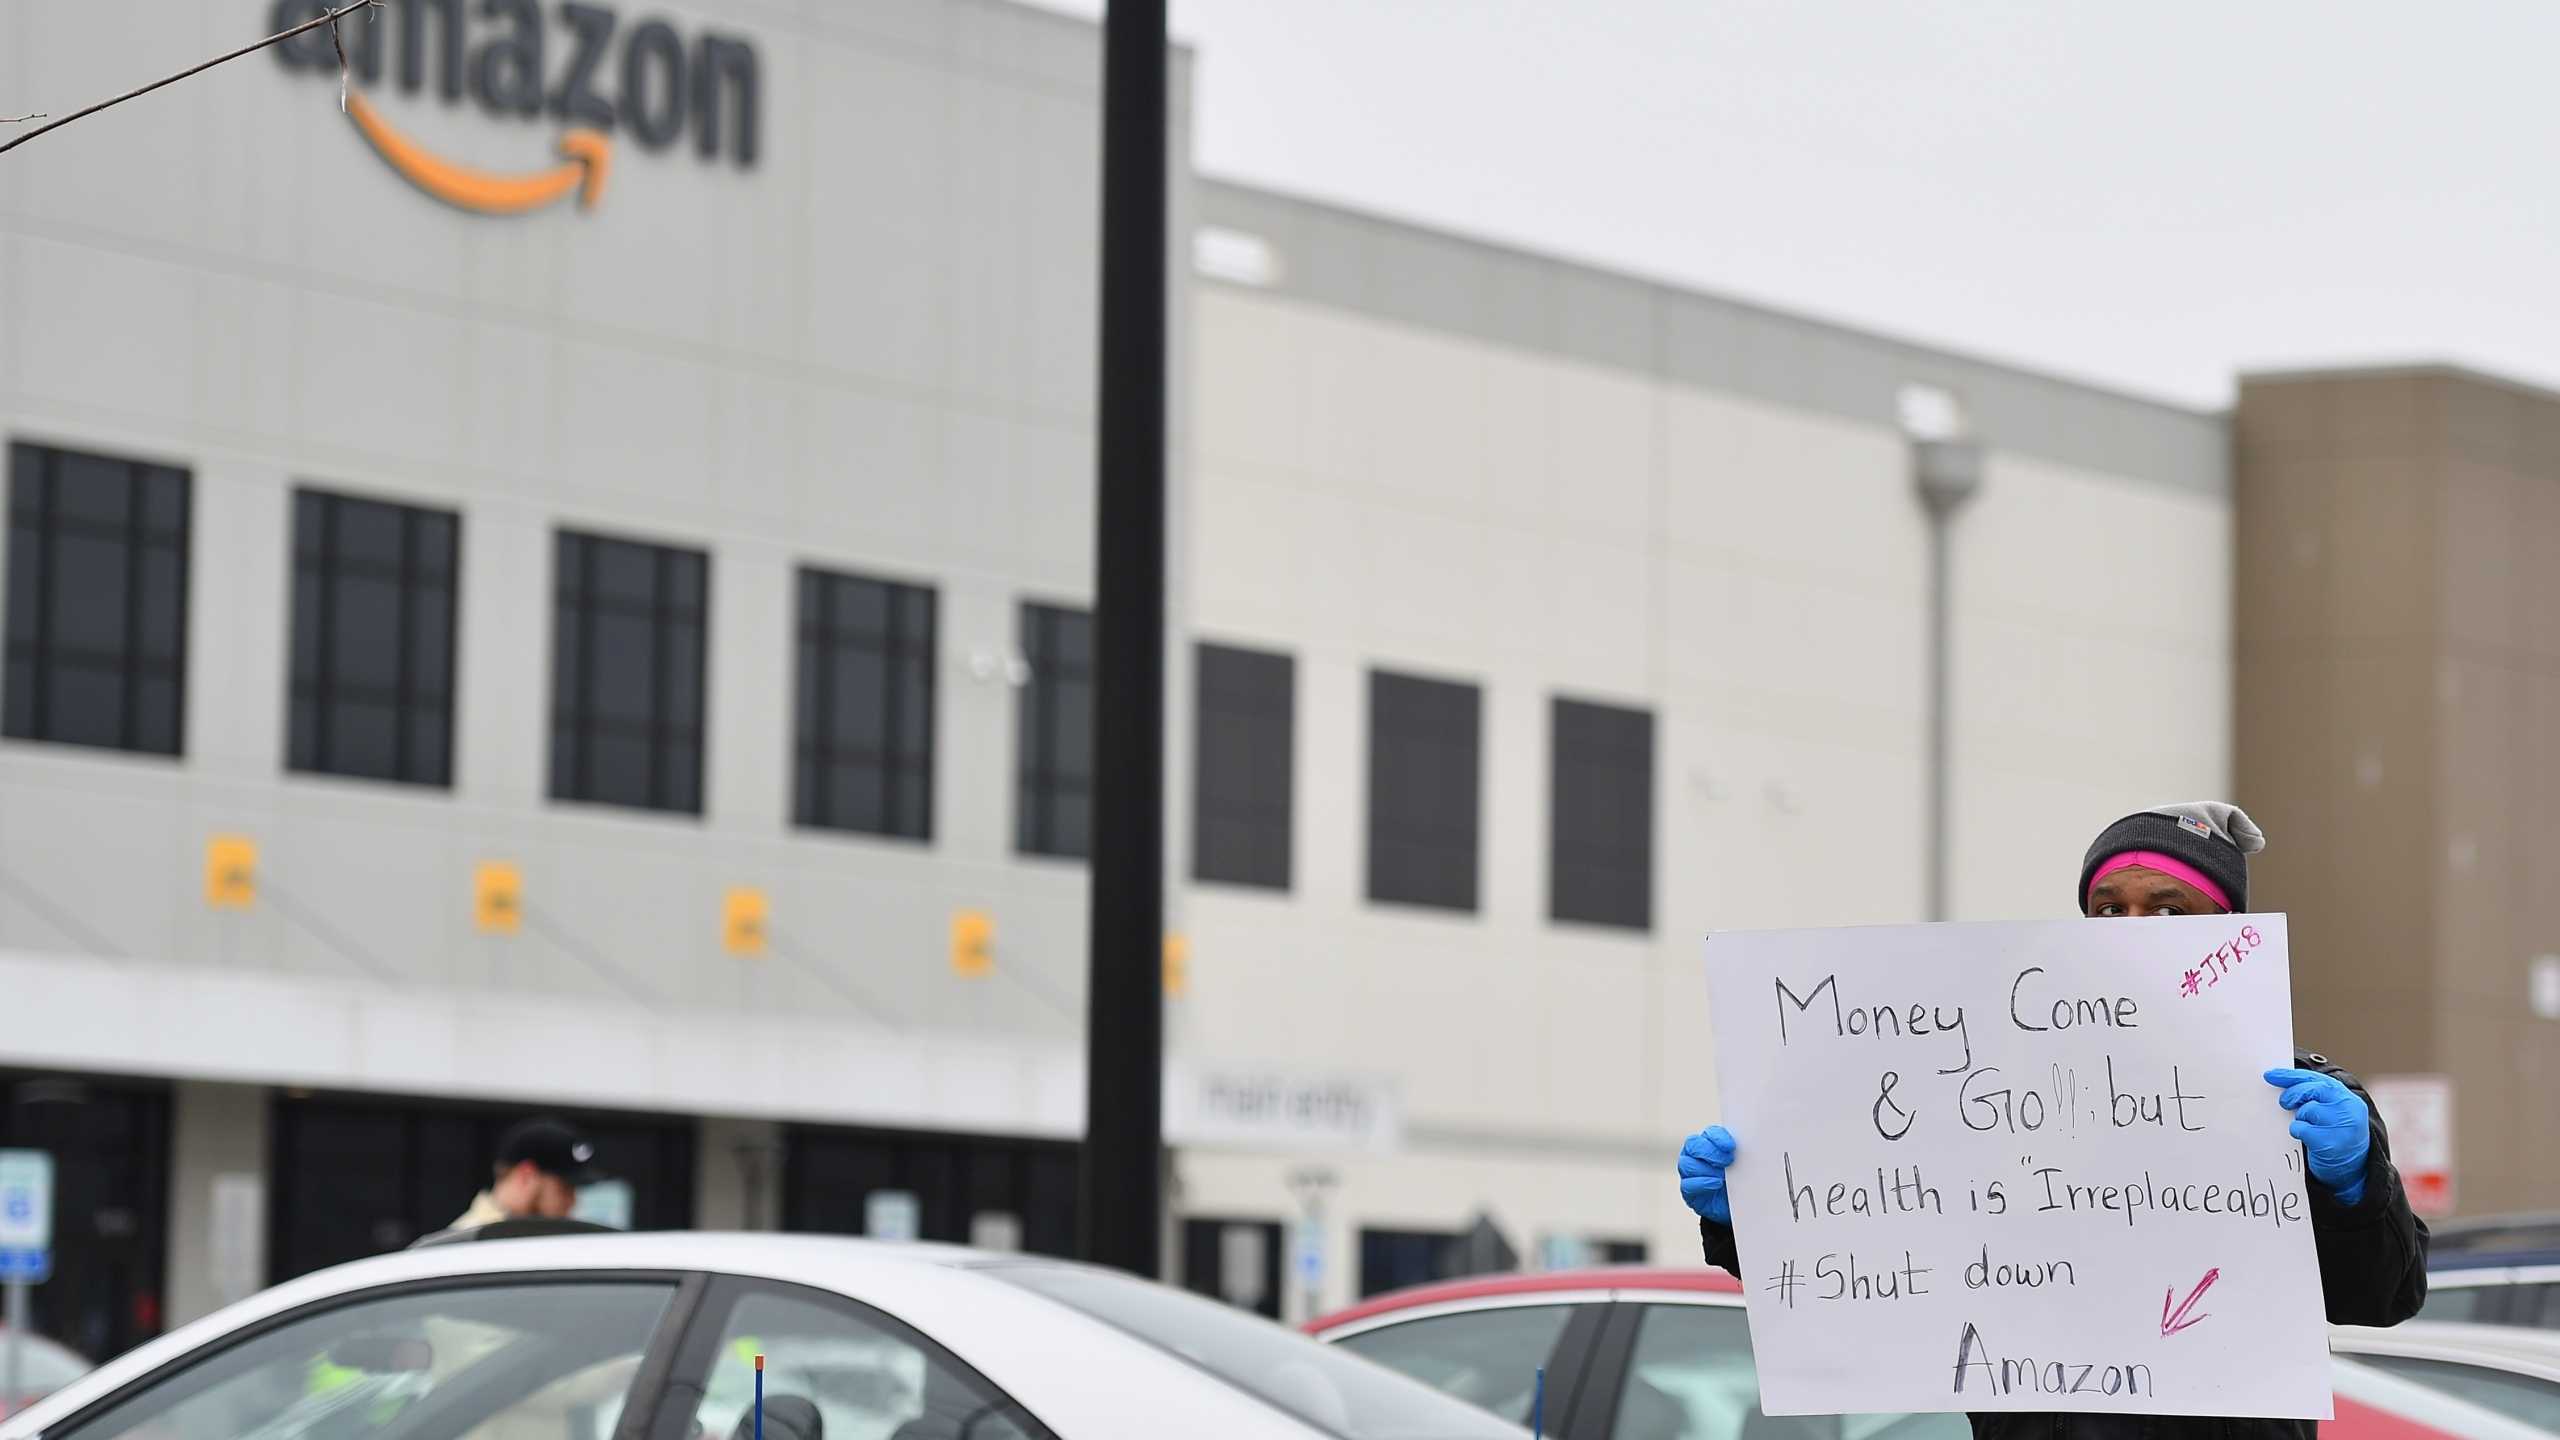 Workers at Amazon's Staten Island warehouse strike in demand that the facility be shut down and cleaned after one staffer tested positive for the coronavirus on March 30, 2020. (Angela Weiss / AFP / Getty Images)